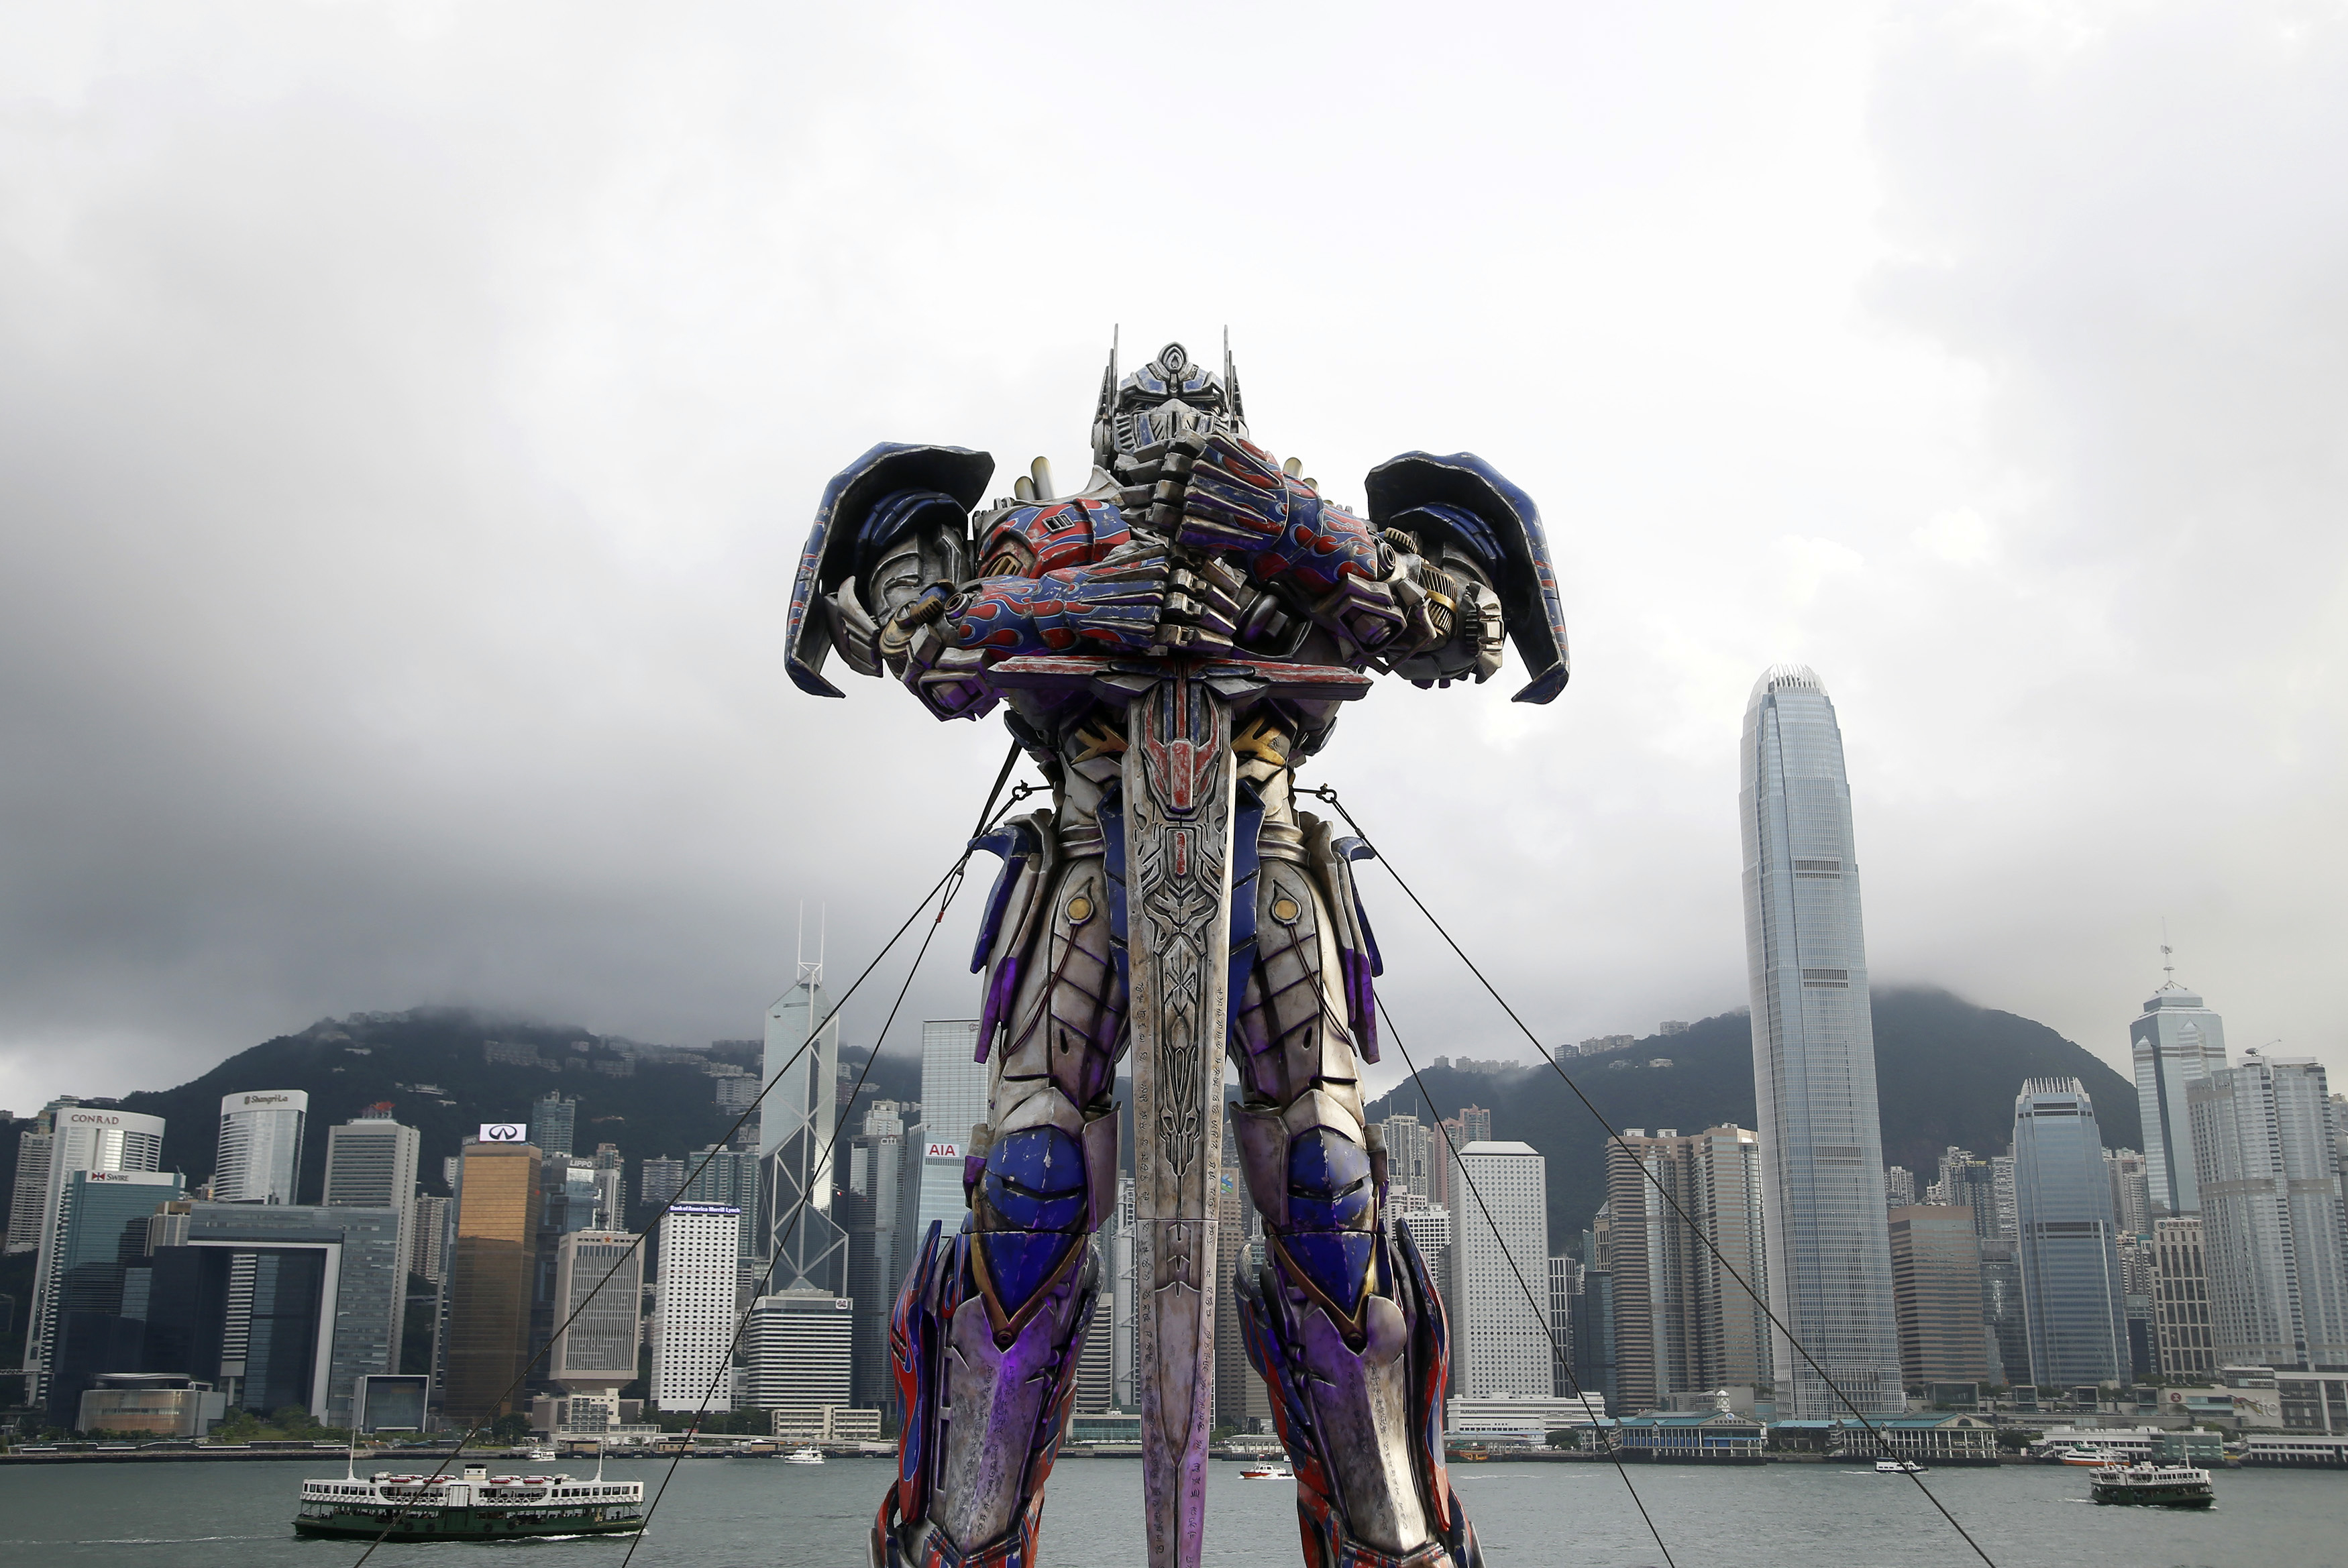 A model of the character Optimus Prime is displayed on the red carpet before the world premiere of Transformers: Age of Extinction in Hong Kong on June 19, 2014